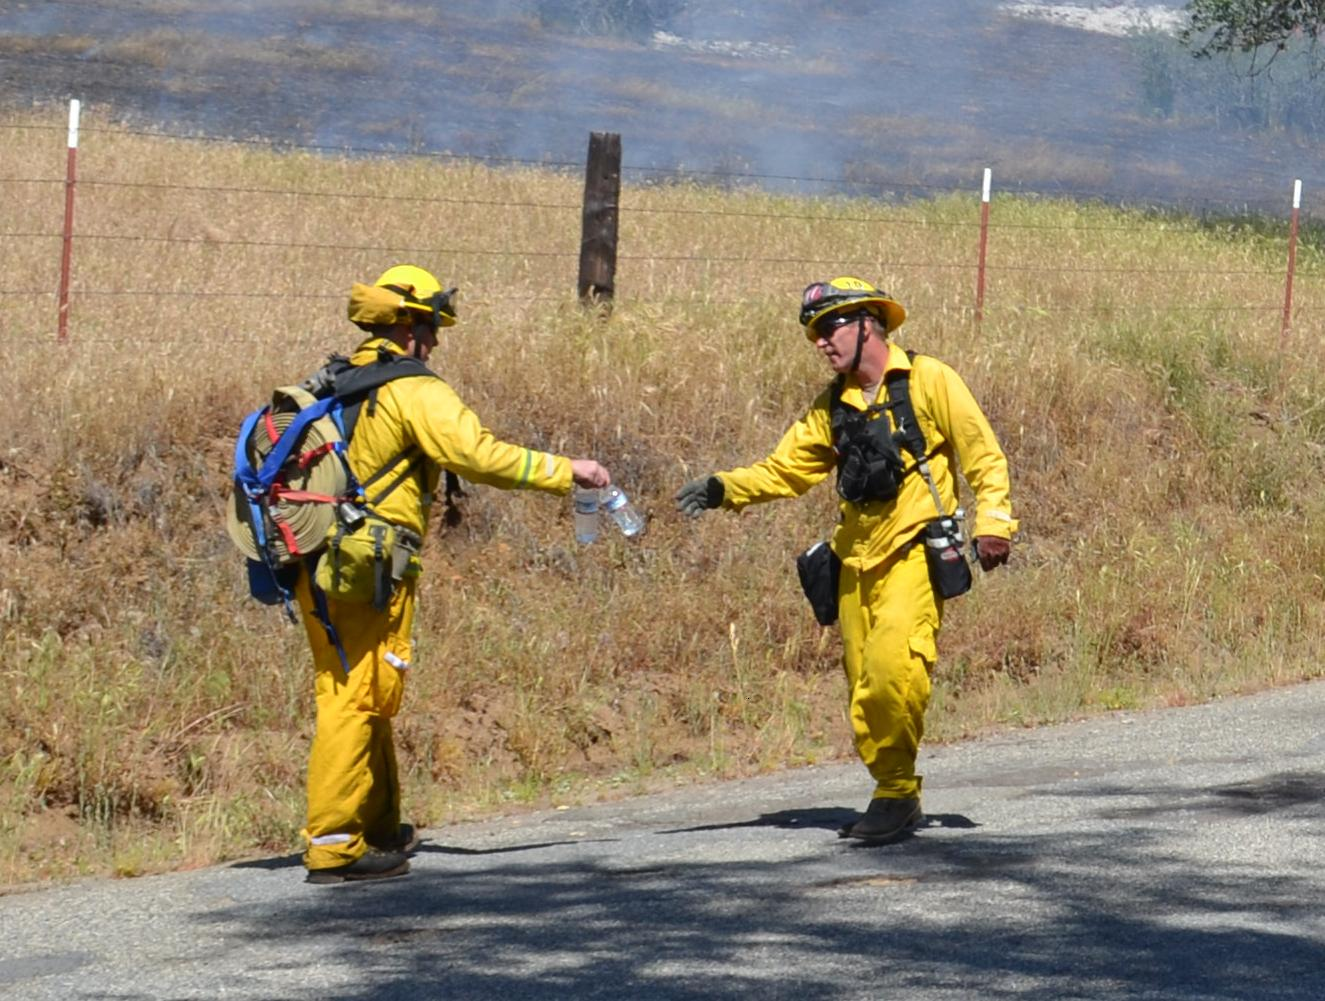 Firefighters share water bottles